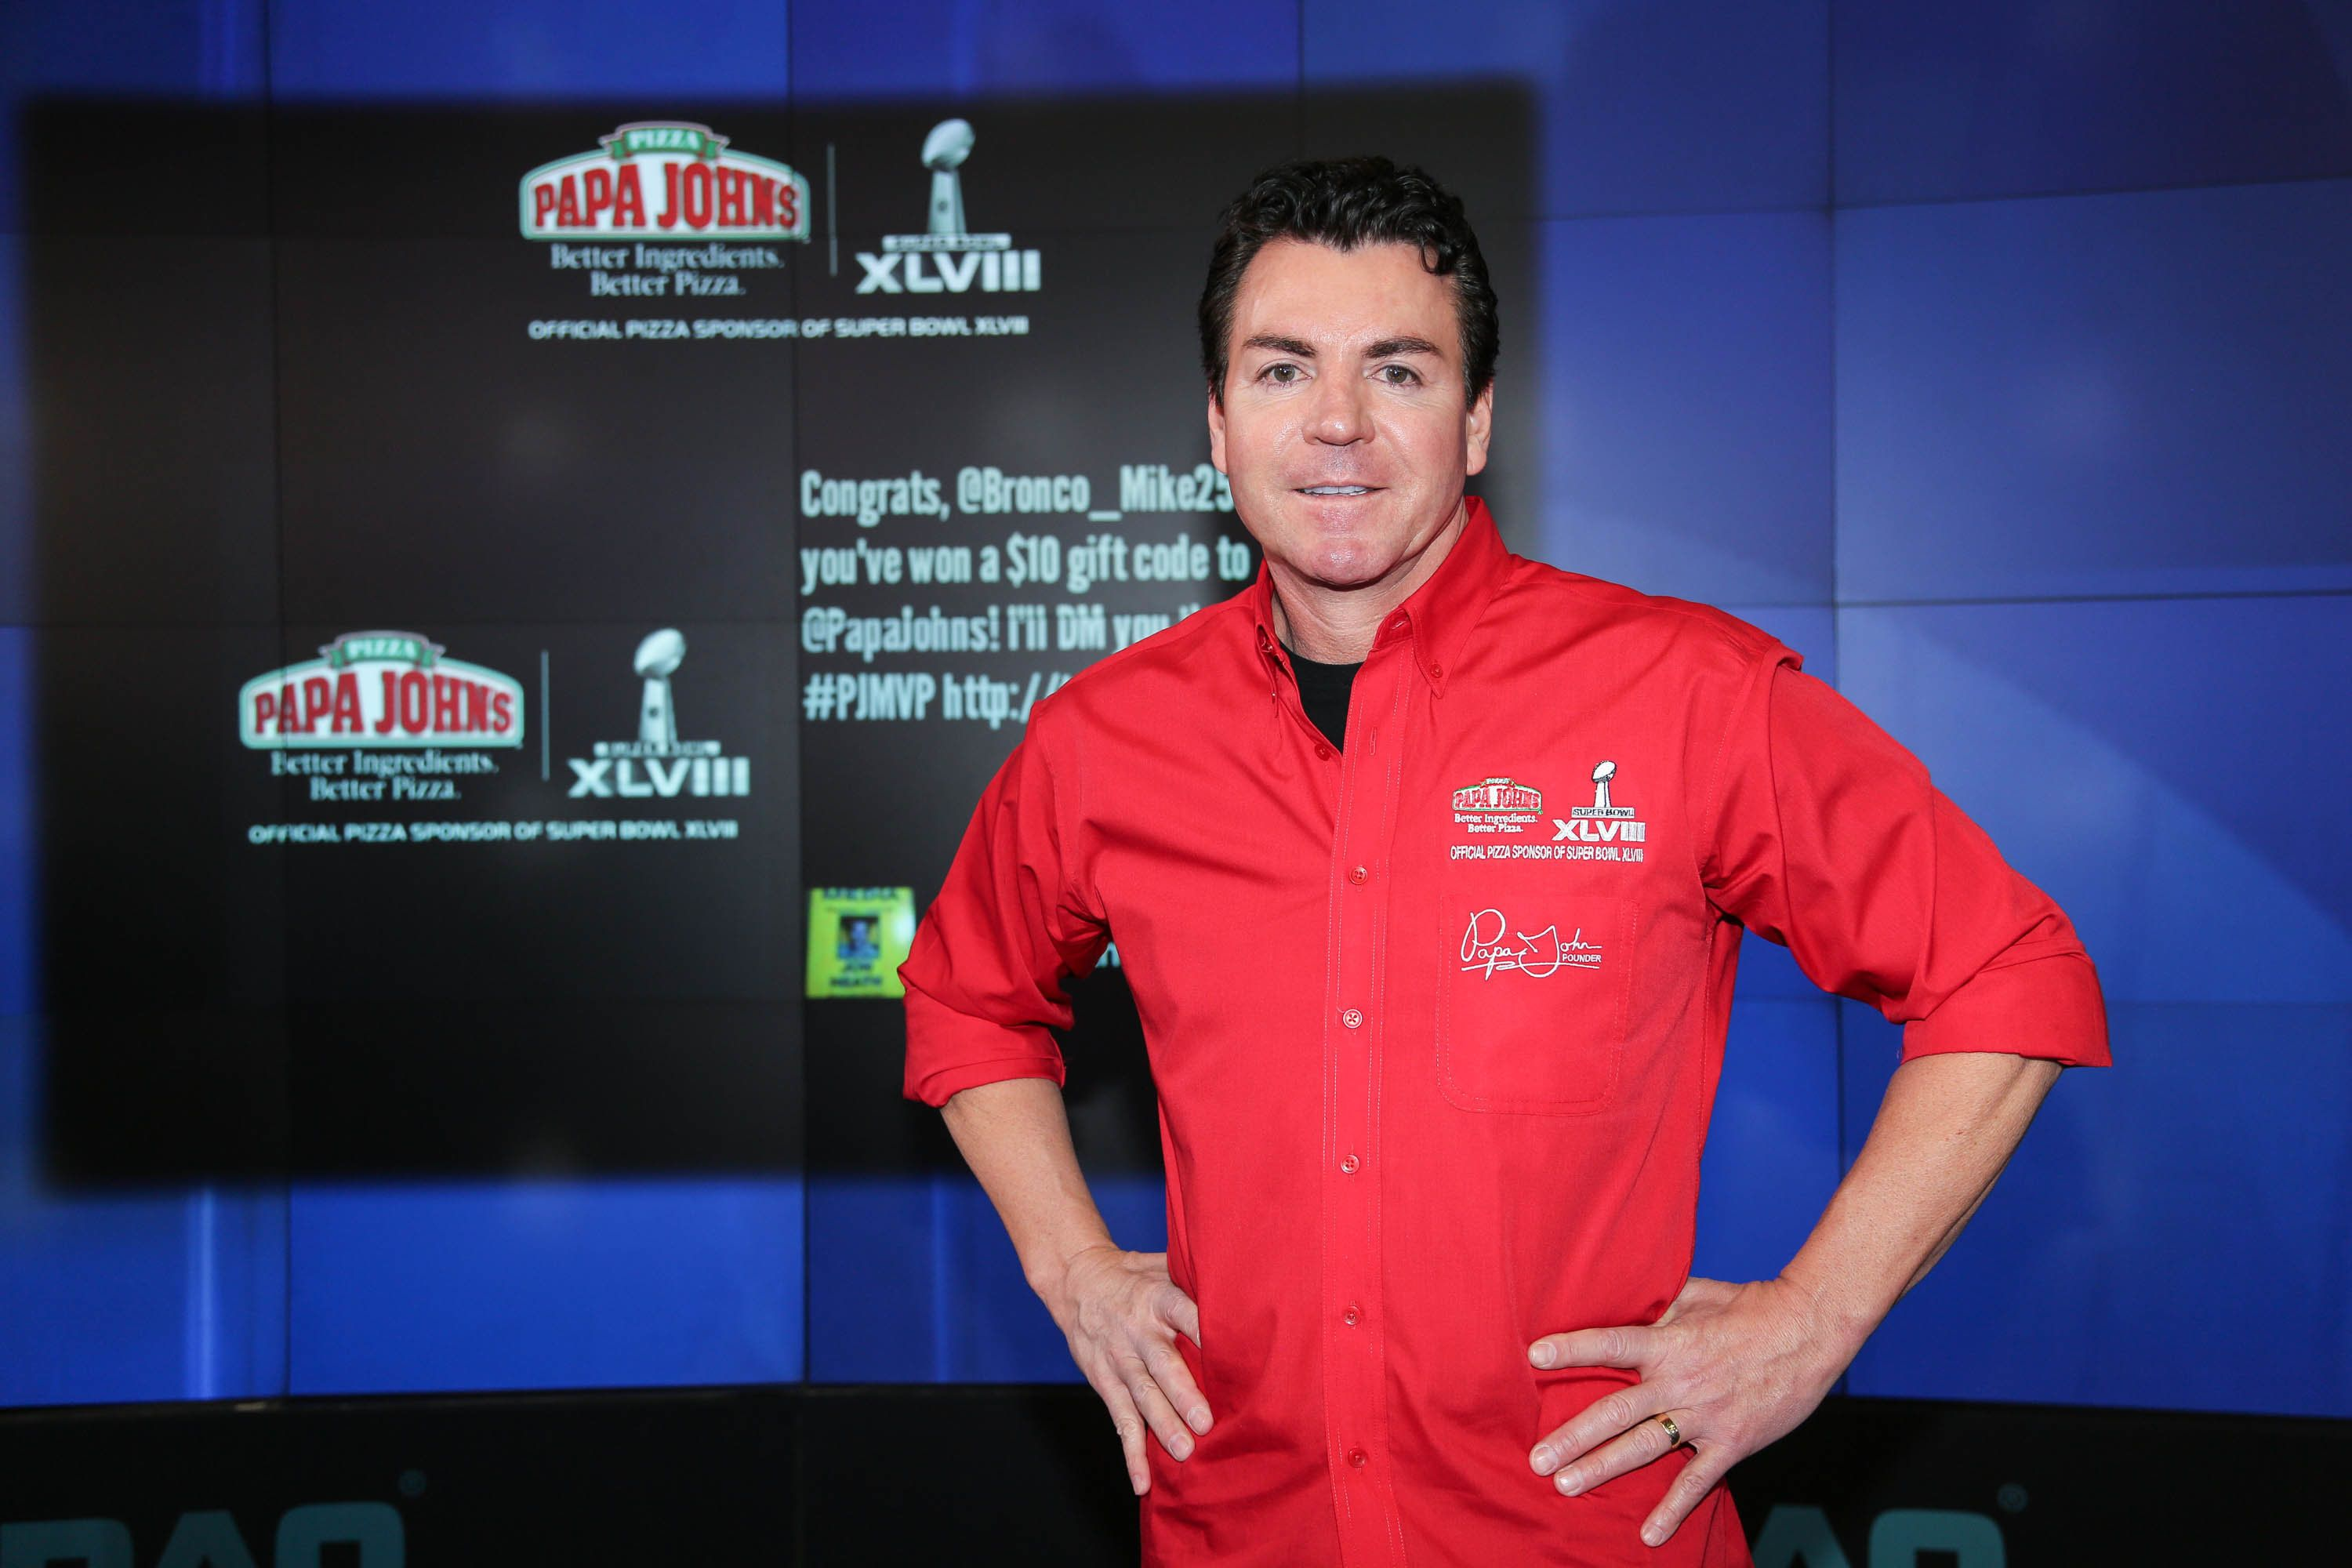 Papa John's founder says resigning over N-word use was a mistake